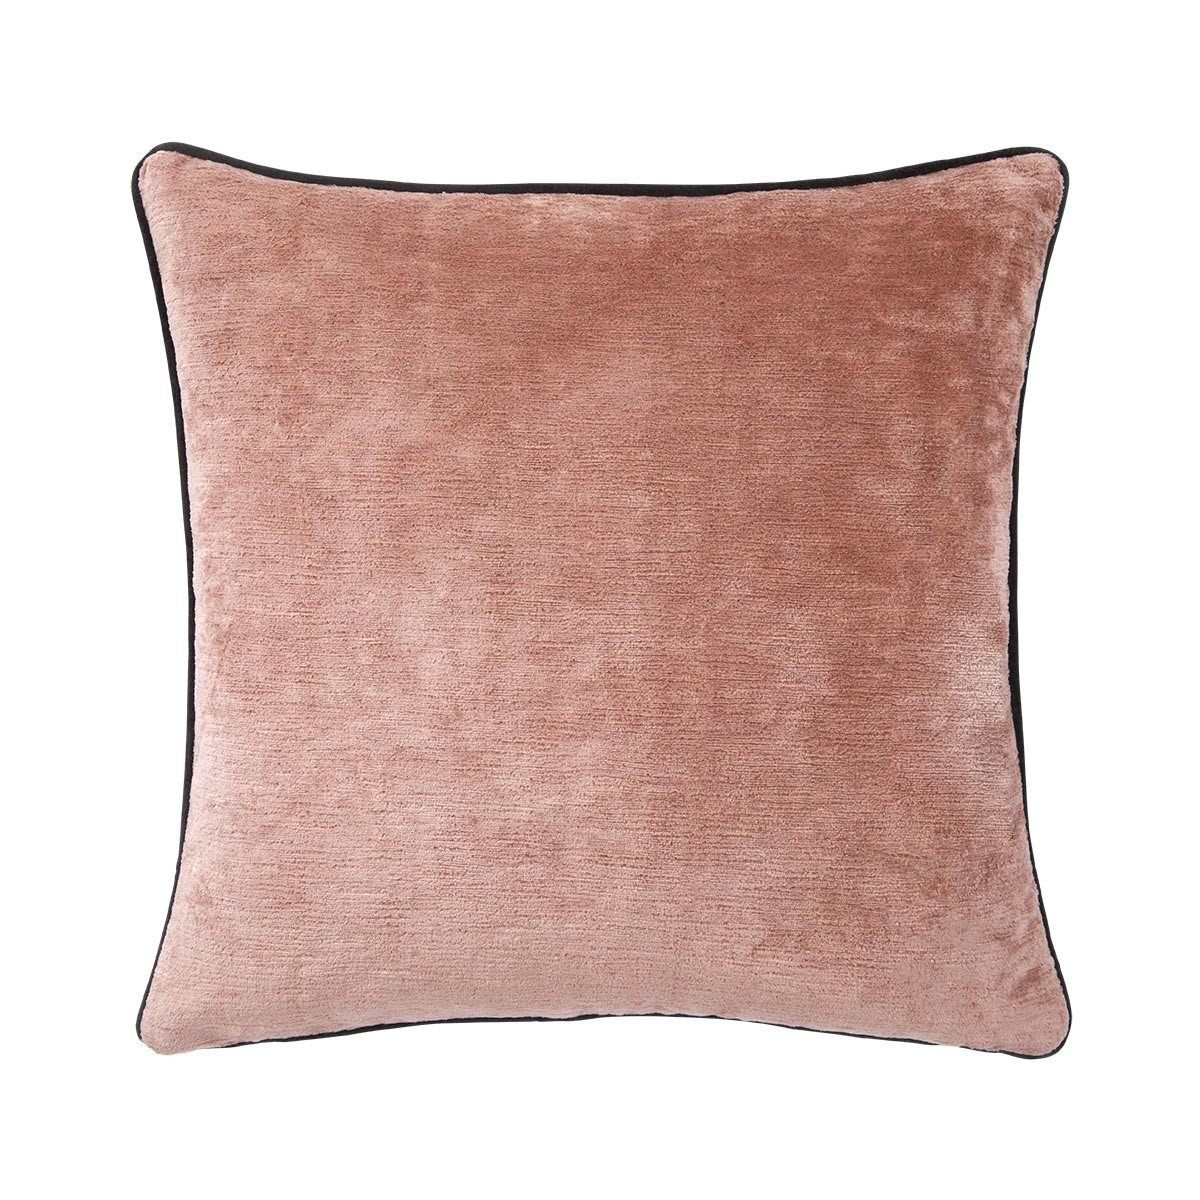 Boromee Cedre Decorative Pillow by Iosis